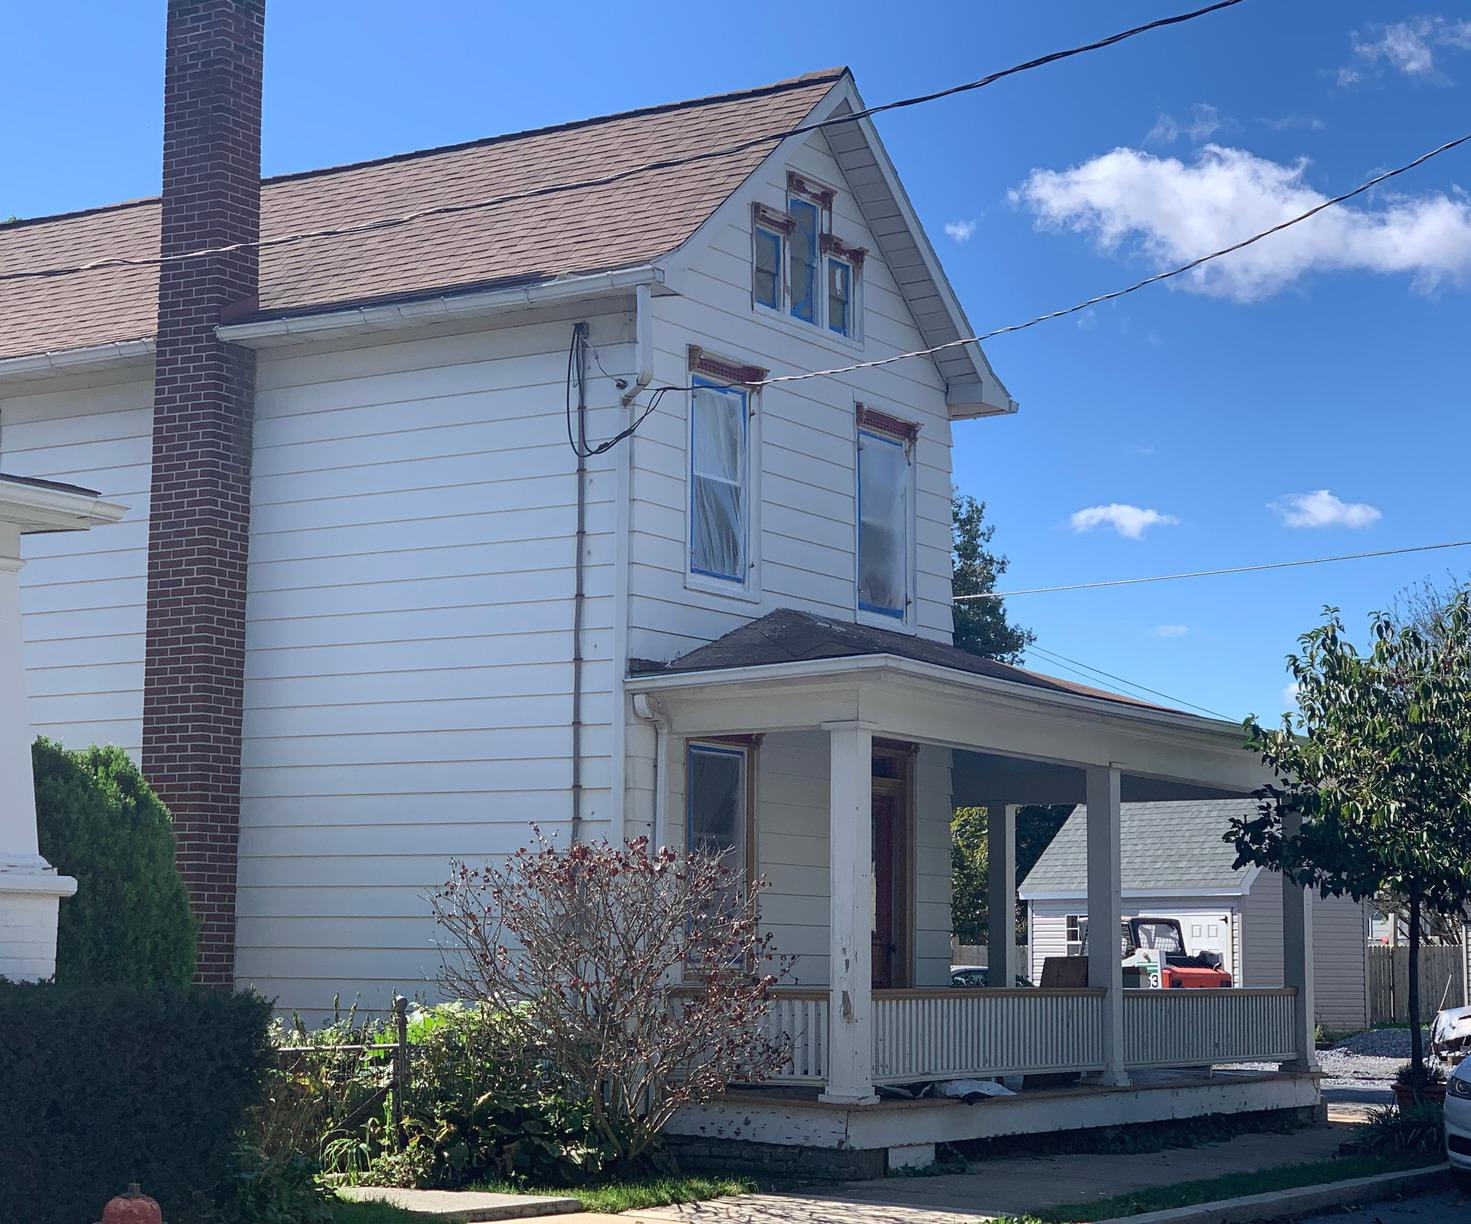 Historic Home Painted with Rhino Shield in Lititz, PA - Before Photo